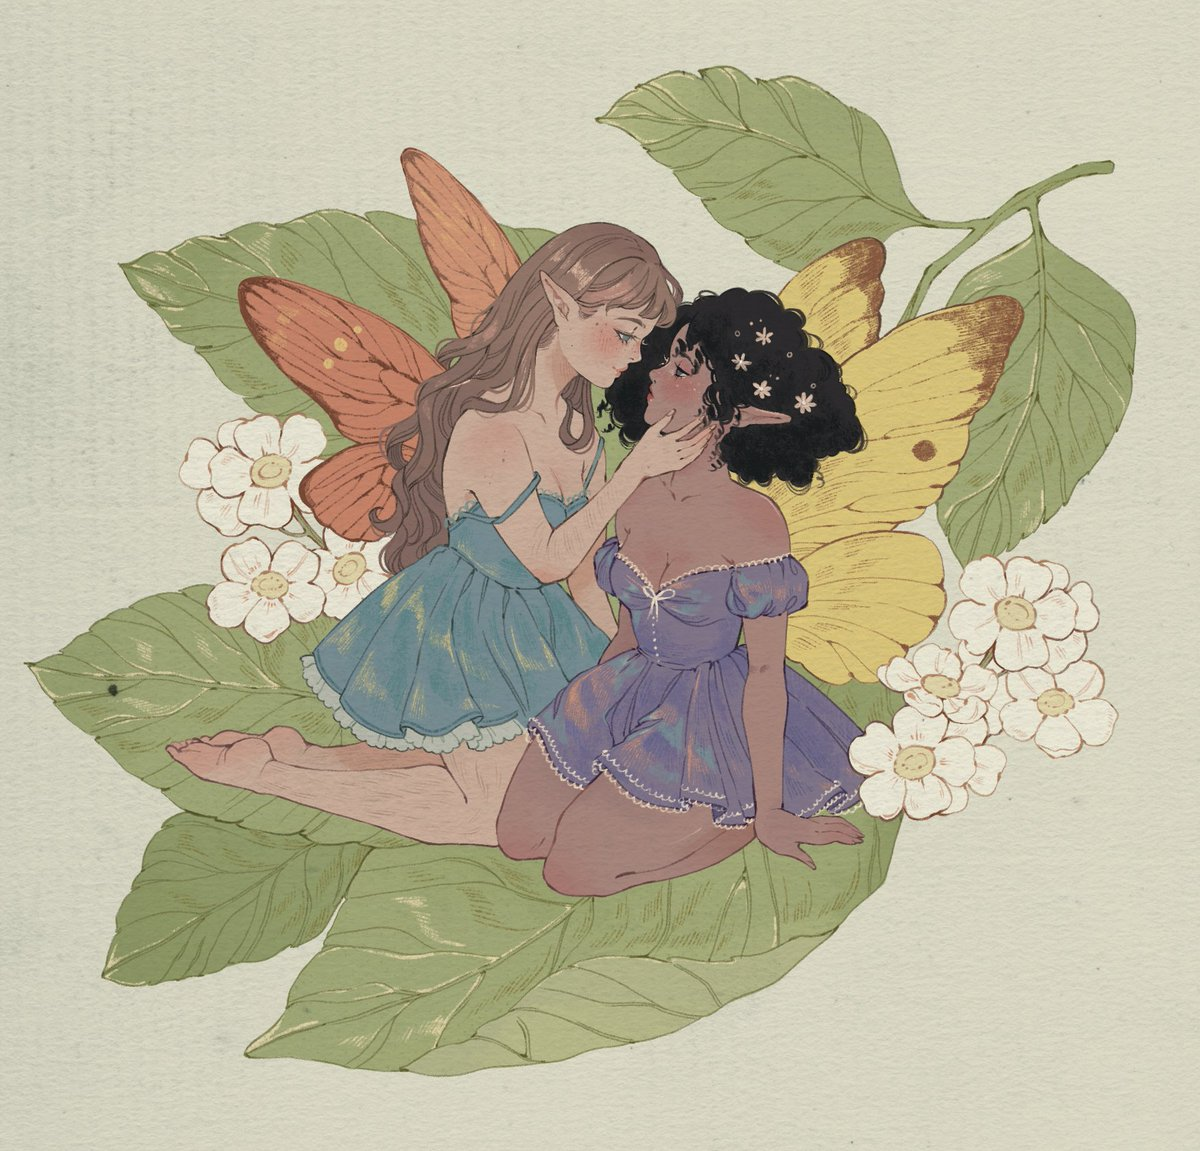 RT @Karlovycross: No more twitter crop to hide my lovely lesbian fairies 🌷✨ https://t.co/dMI5NUpoIC